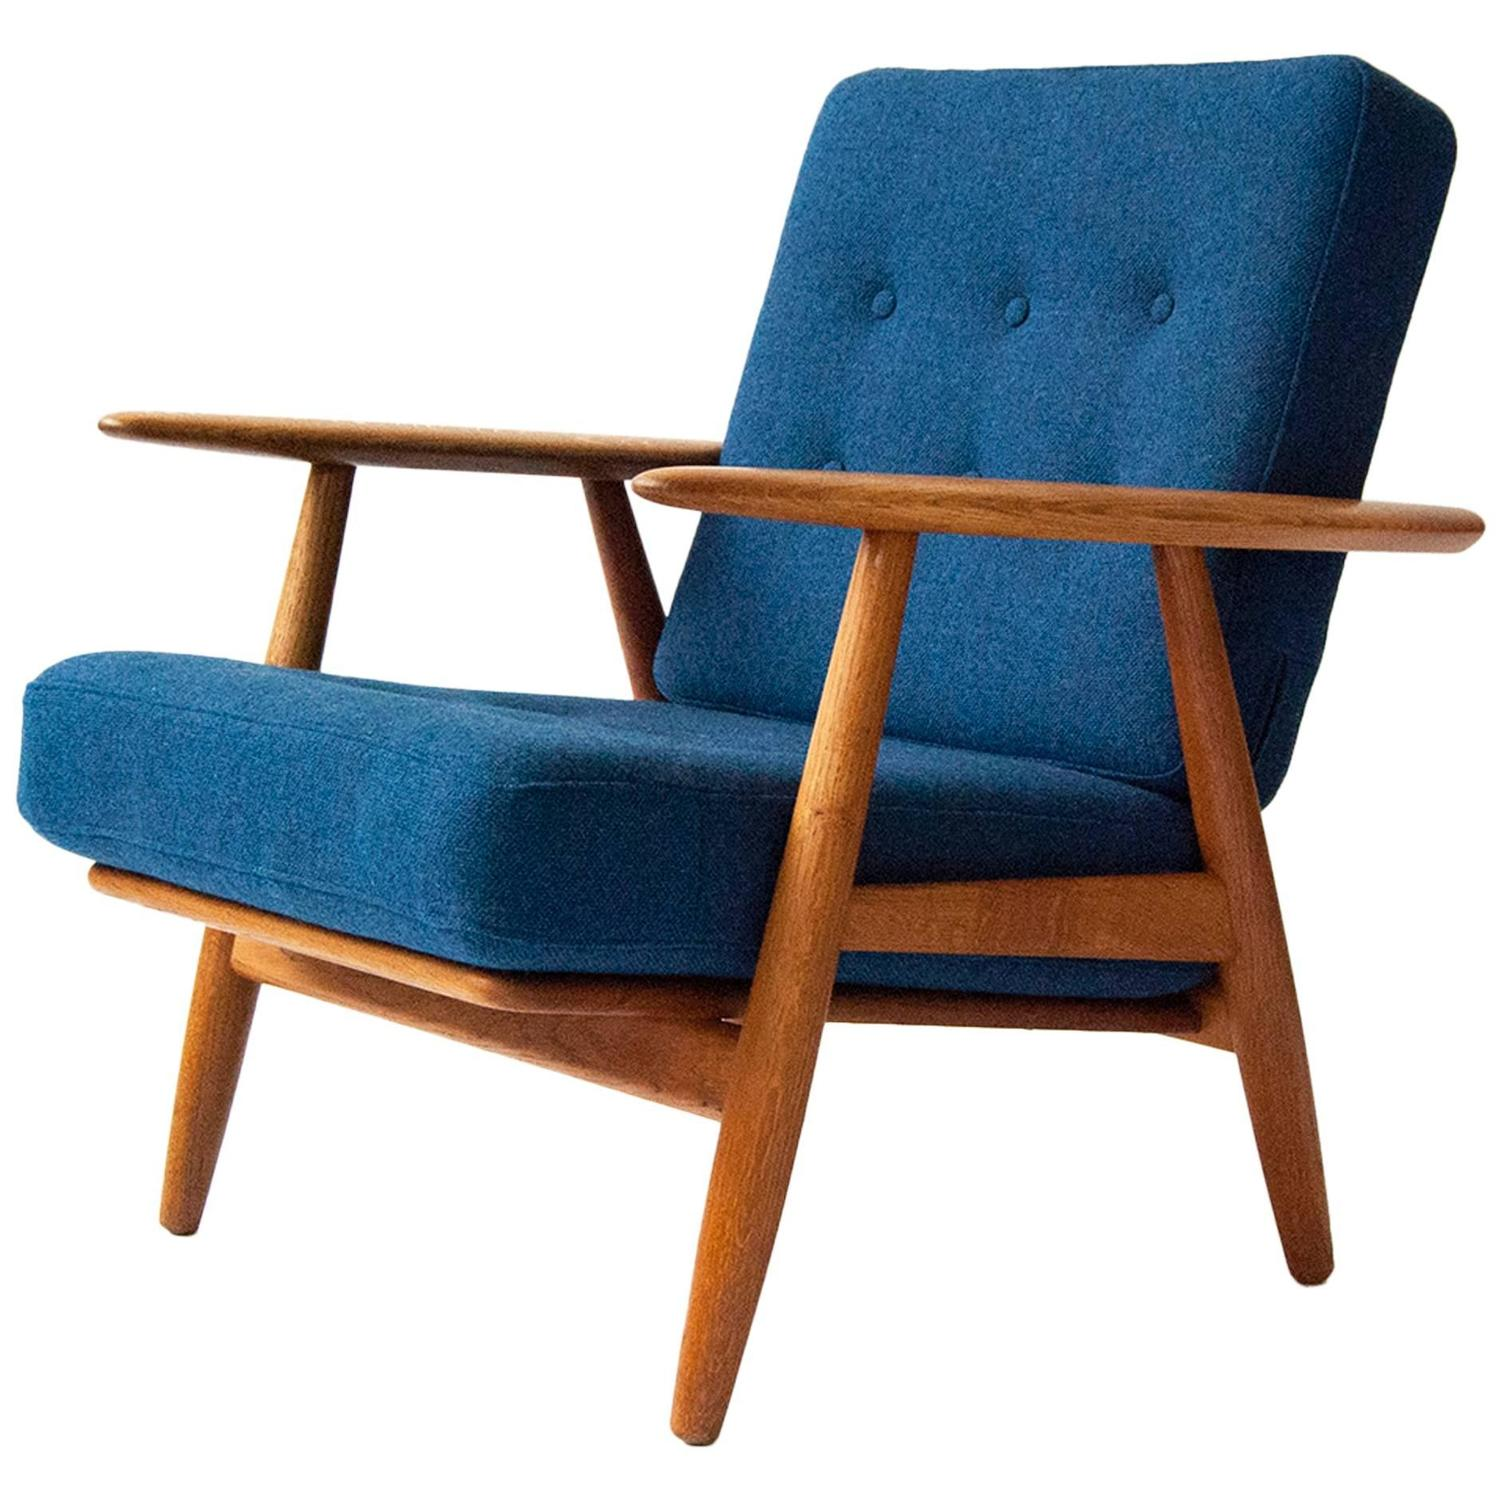 Cigar Lounge Chairs Hans J Wegner Ge 240 Oak 39cigar 39 Chair Circa 1955 At 1stdibs